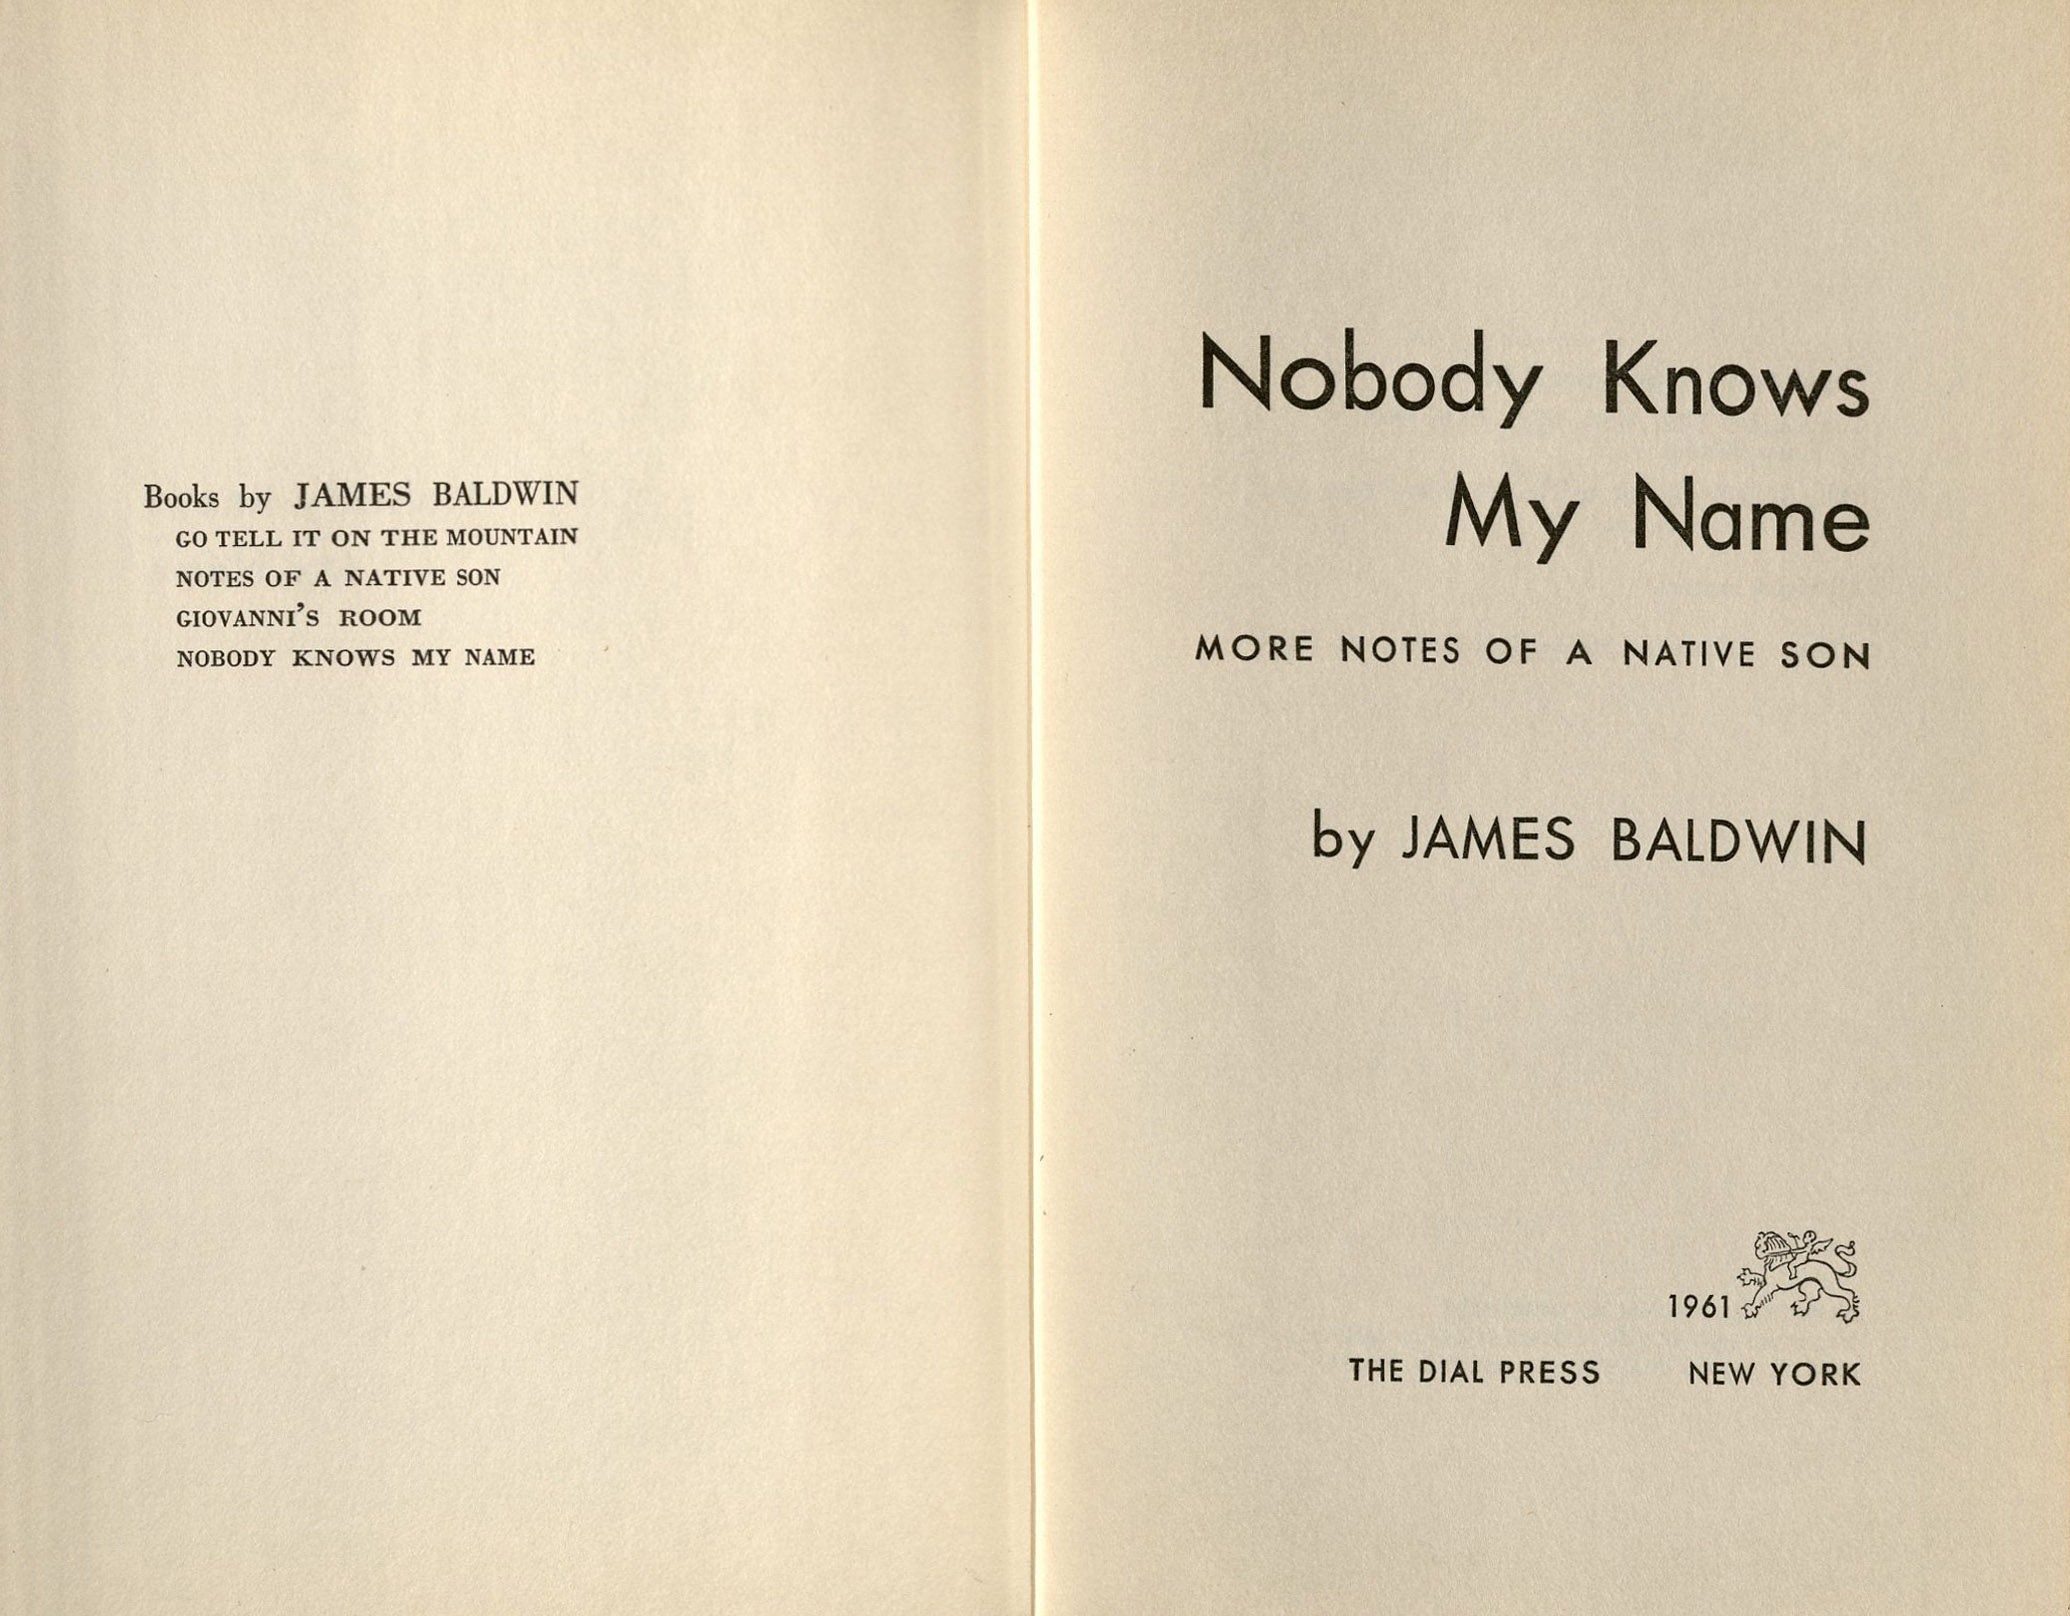 native son essay the works of james baldwin oviatt library phd  the works of james baldwin oviatt library title page of nobody knows my more notes of